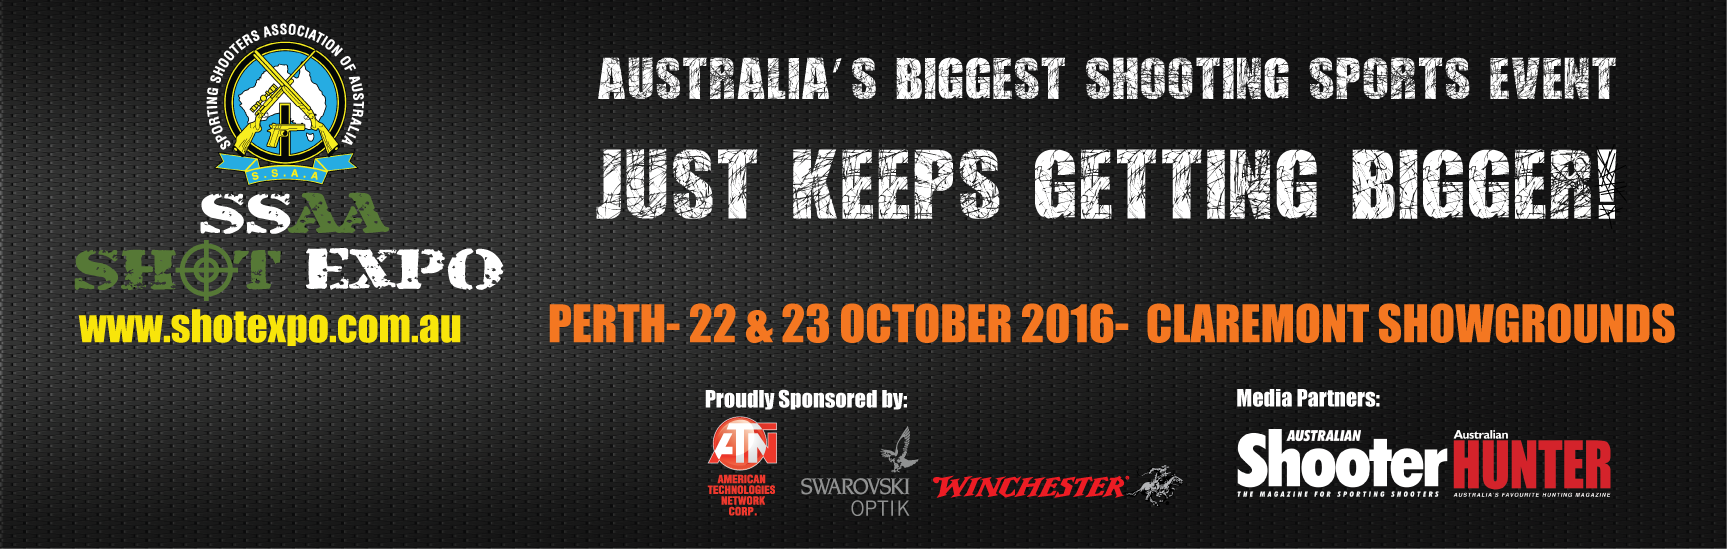 Tickets for SSAA SHOT Expo Perth 2016 in Claremont from Ticketbooth